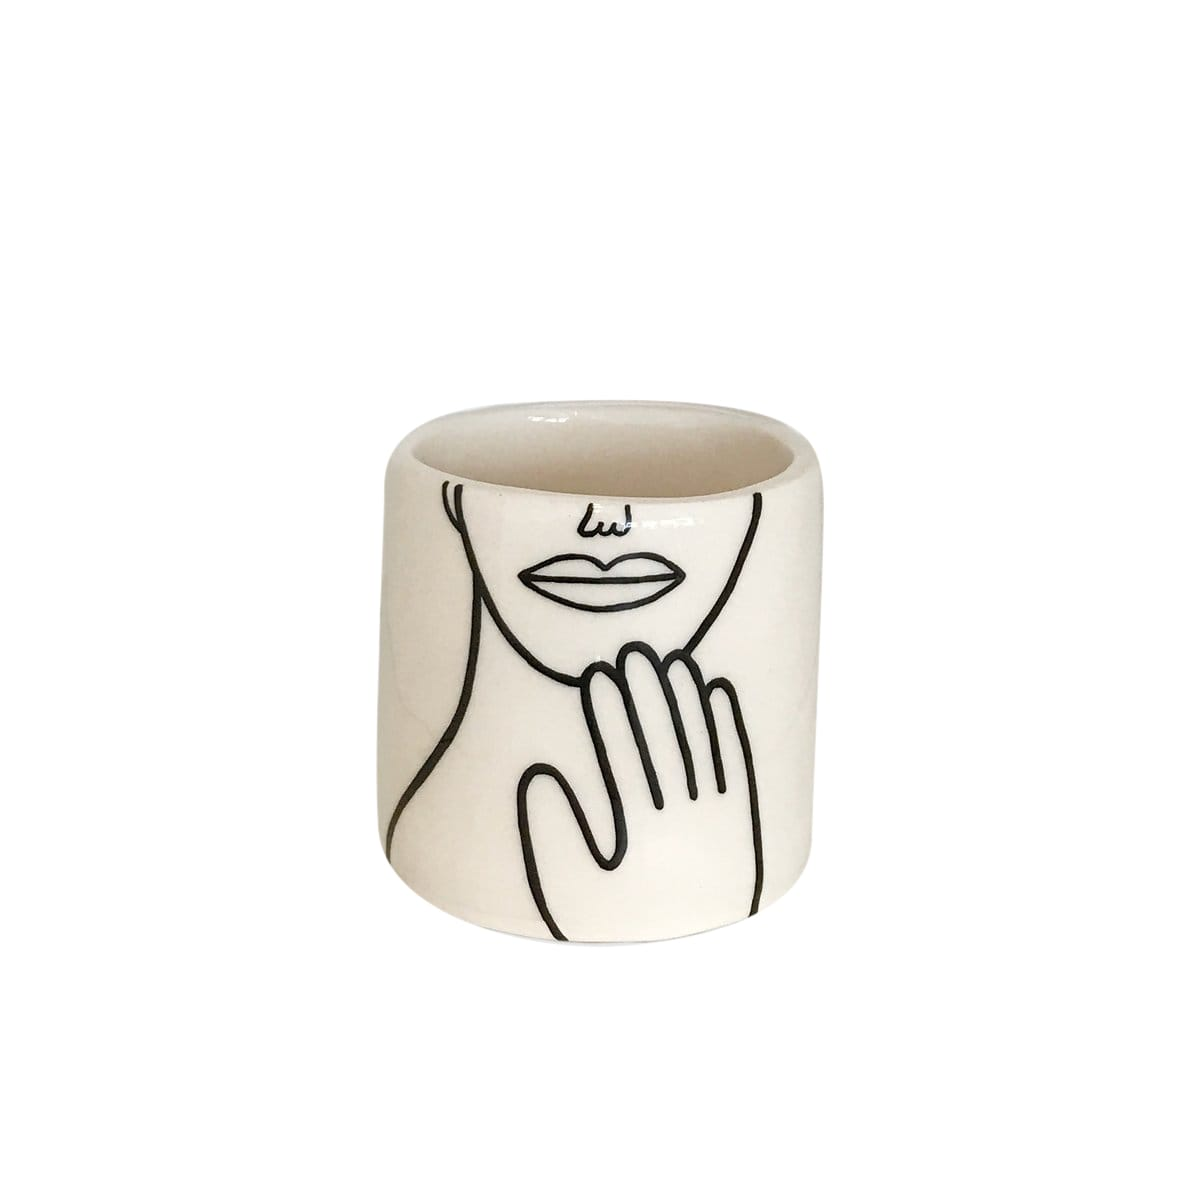 Louise Madzia Small Face Planter